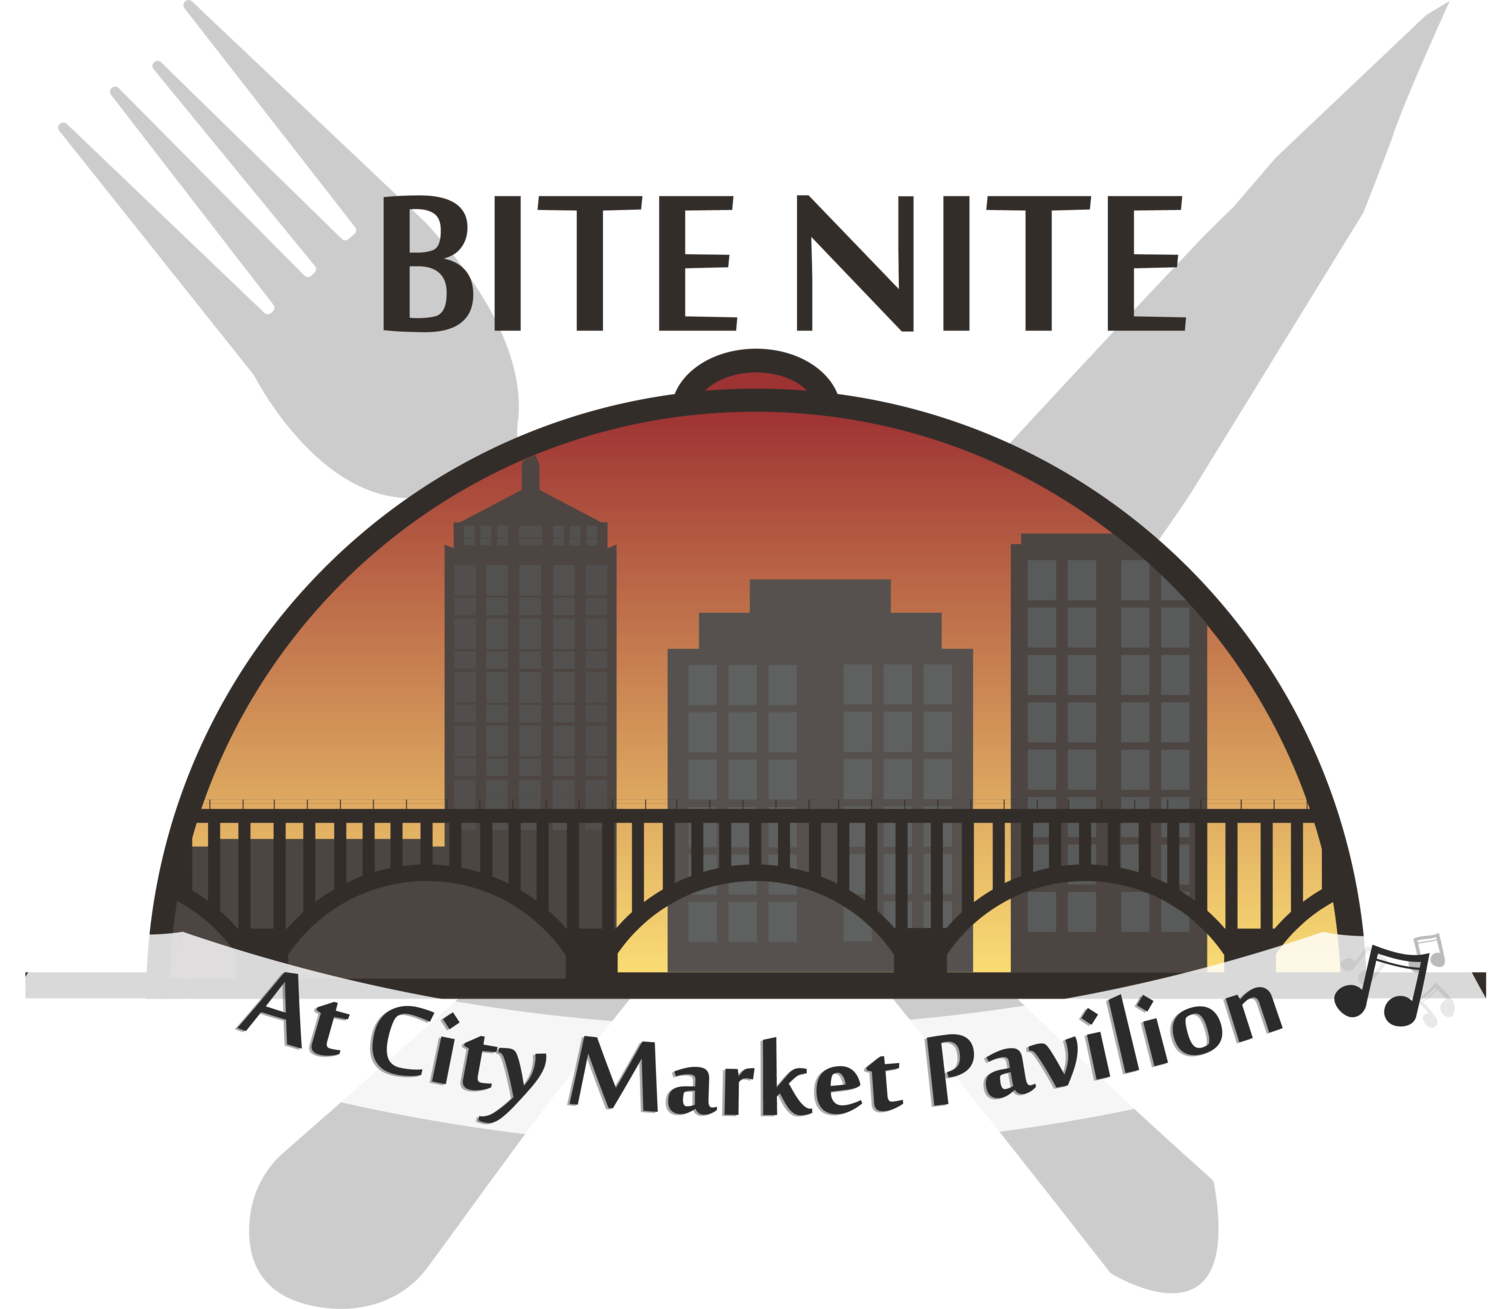 Bite Nite at City Market Pavilion